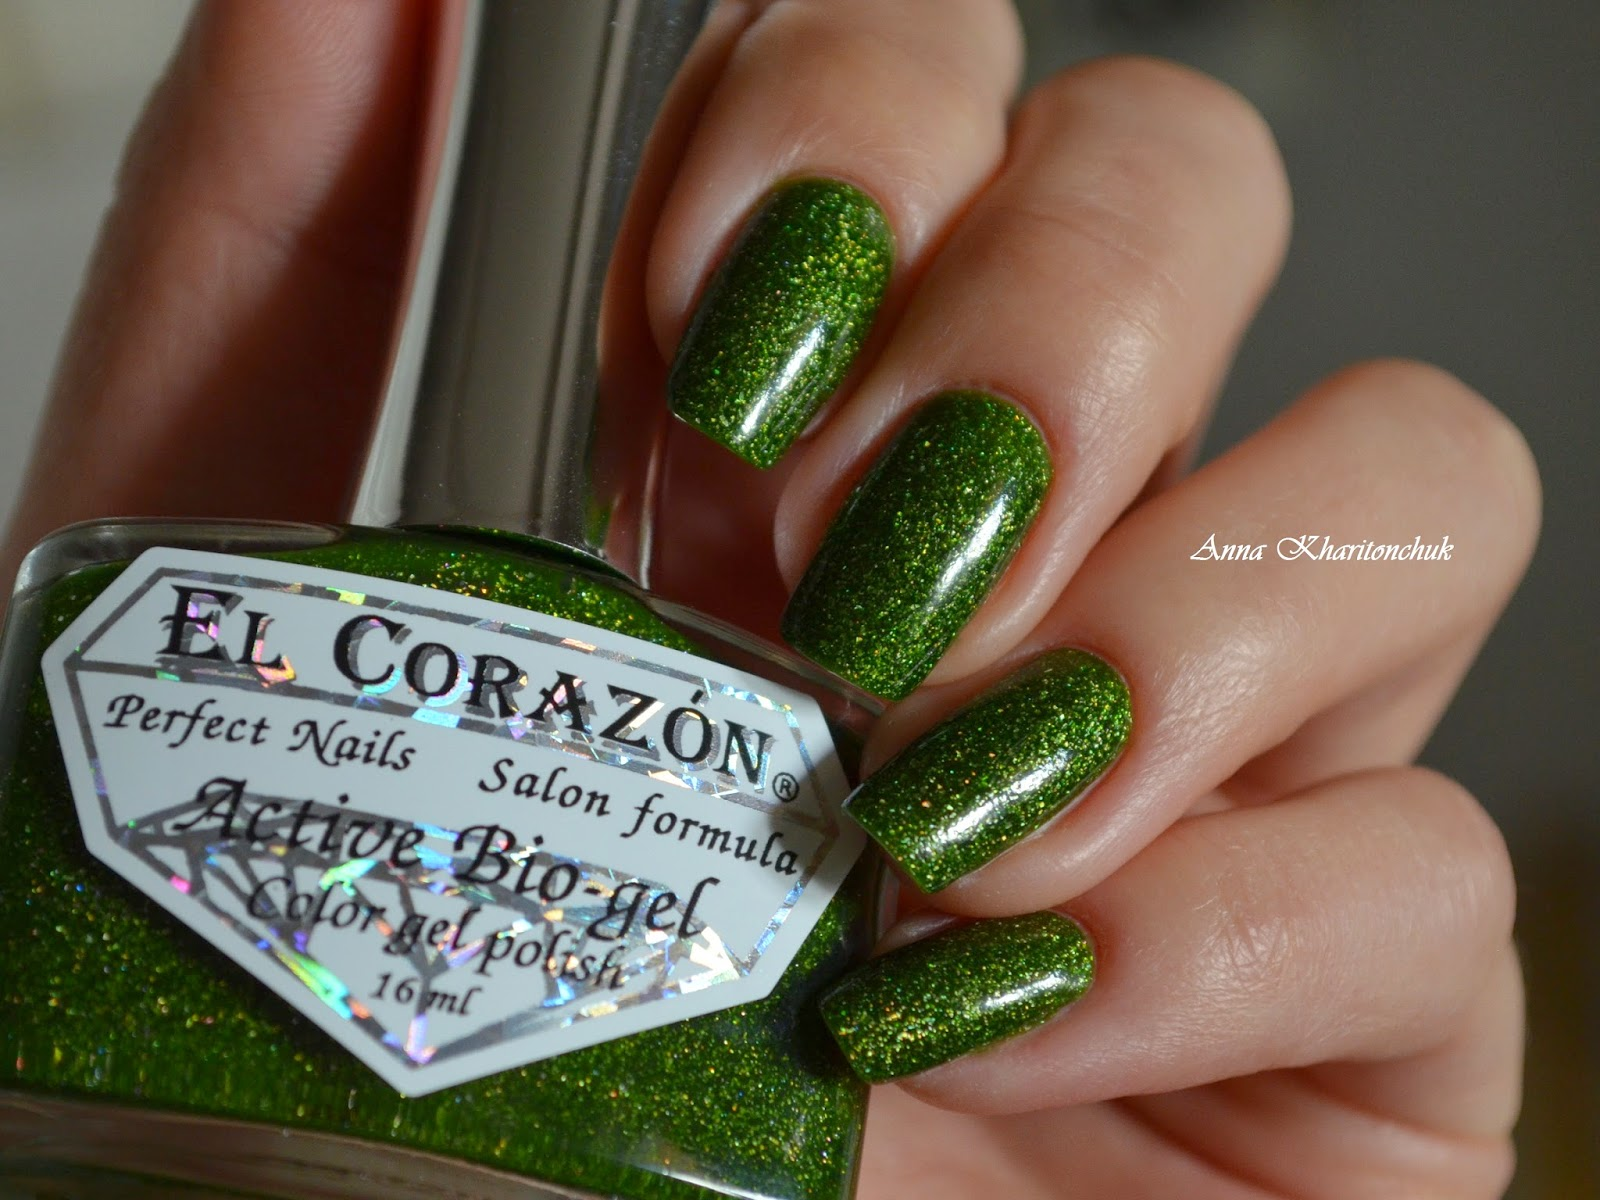 El Corazon Active Bio-Gel # 423/507 Large Hologram Nymph и слайдер дизайн